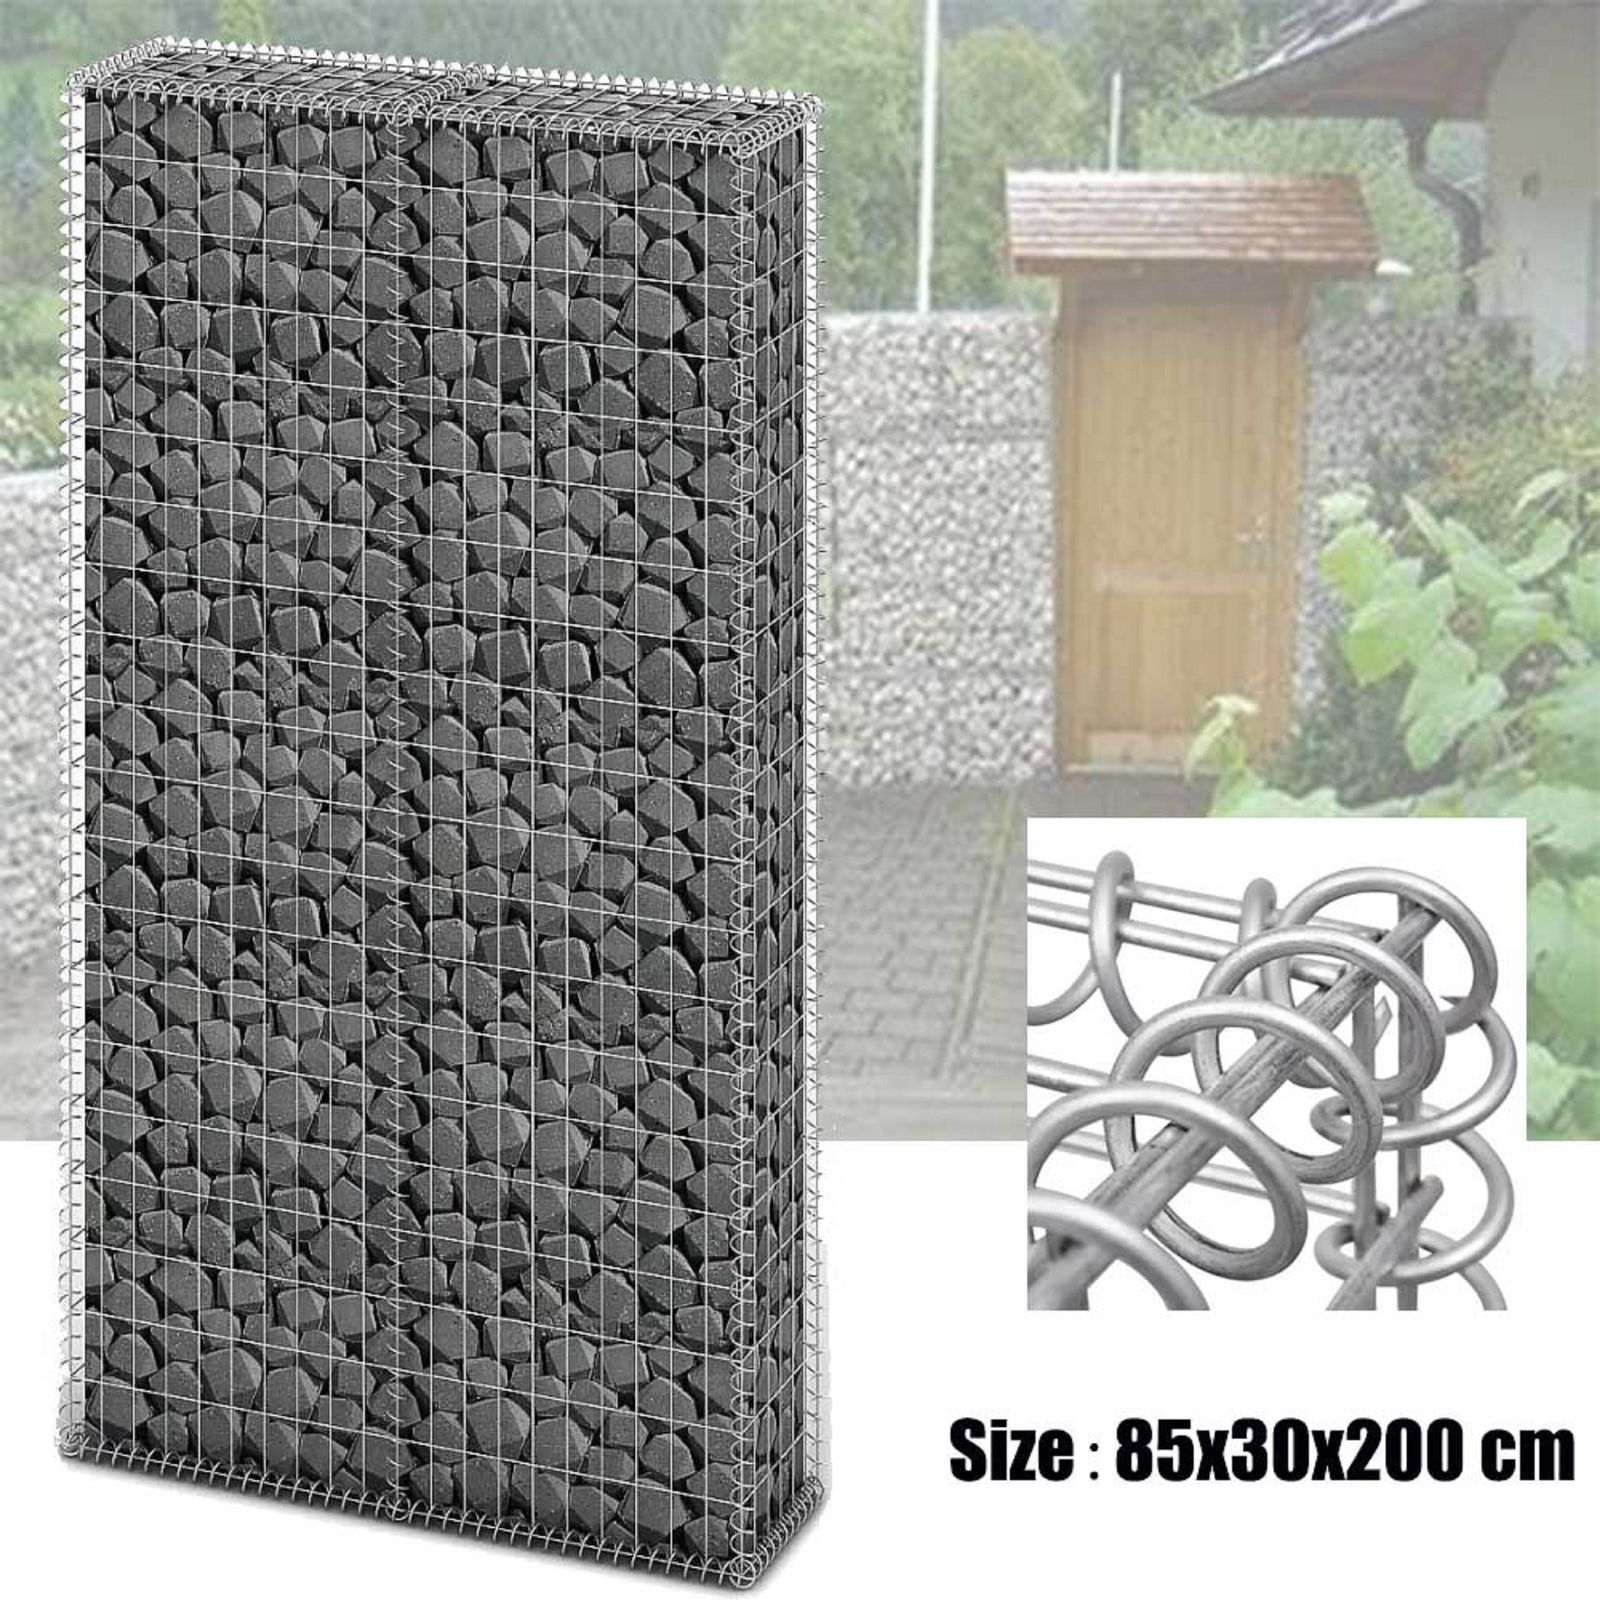 China Supplier Welded Gabion Box Wire Mesh Gabion Stone Basket